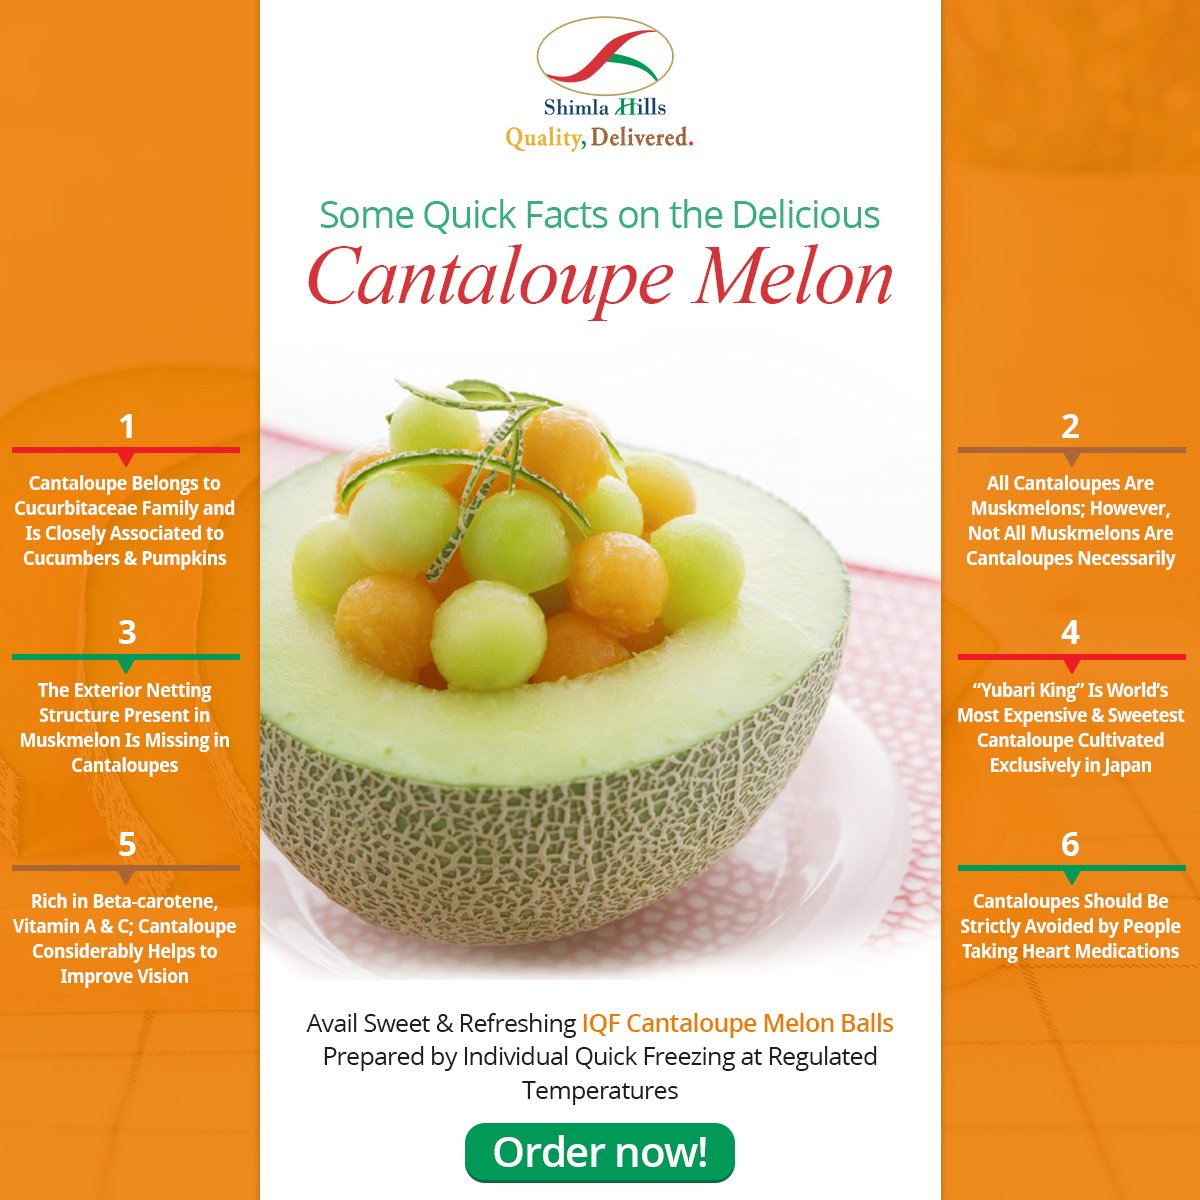 Shimla Hills On Twitter Premium Quality Iqf Cantaloupe Melon Balls From Shimla Hills Prepared From Fresh Juicy Cantaloupes Always Https T Co F1g9h7gias Iqf Fruits Nutrition Food Indus Food Networking Inspirefoodbusiness #elise bauman #natasha negovanlis #twitter #natasha x elise #cantaloupe #they are so married #elise3aum #natlise #negovanilis #negovanman #hollstein #creampuffs. iqf cantaloupe melon balls